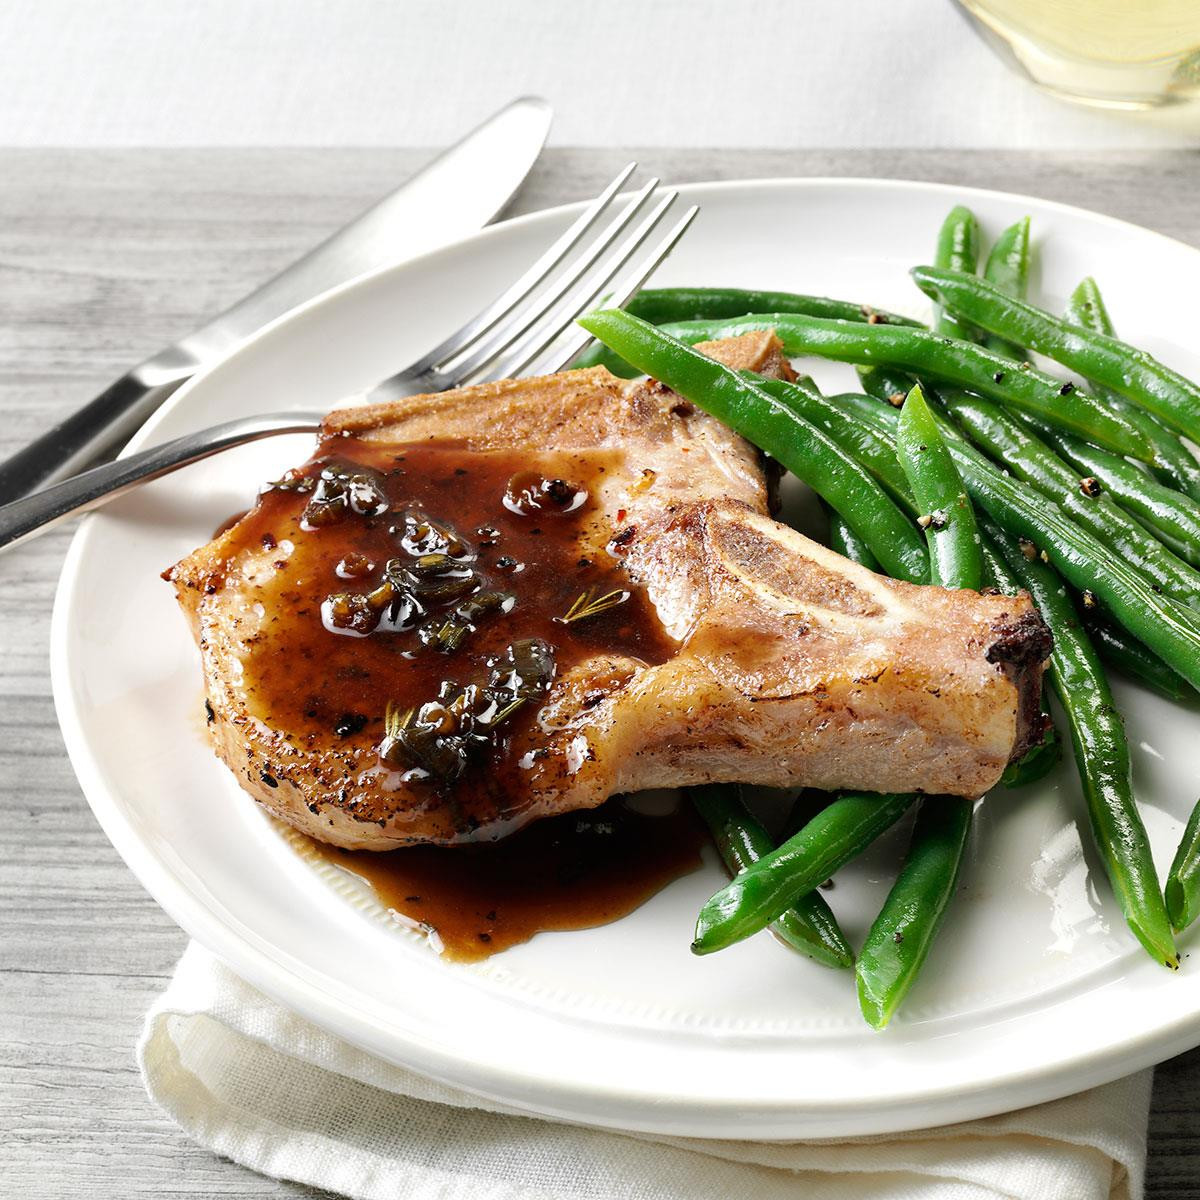 Recipes With Pork Chops  Pork Chops with Honey Balsamic Glaze Recipe